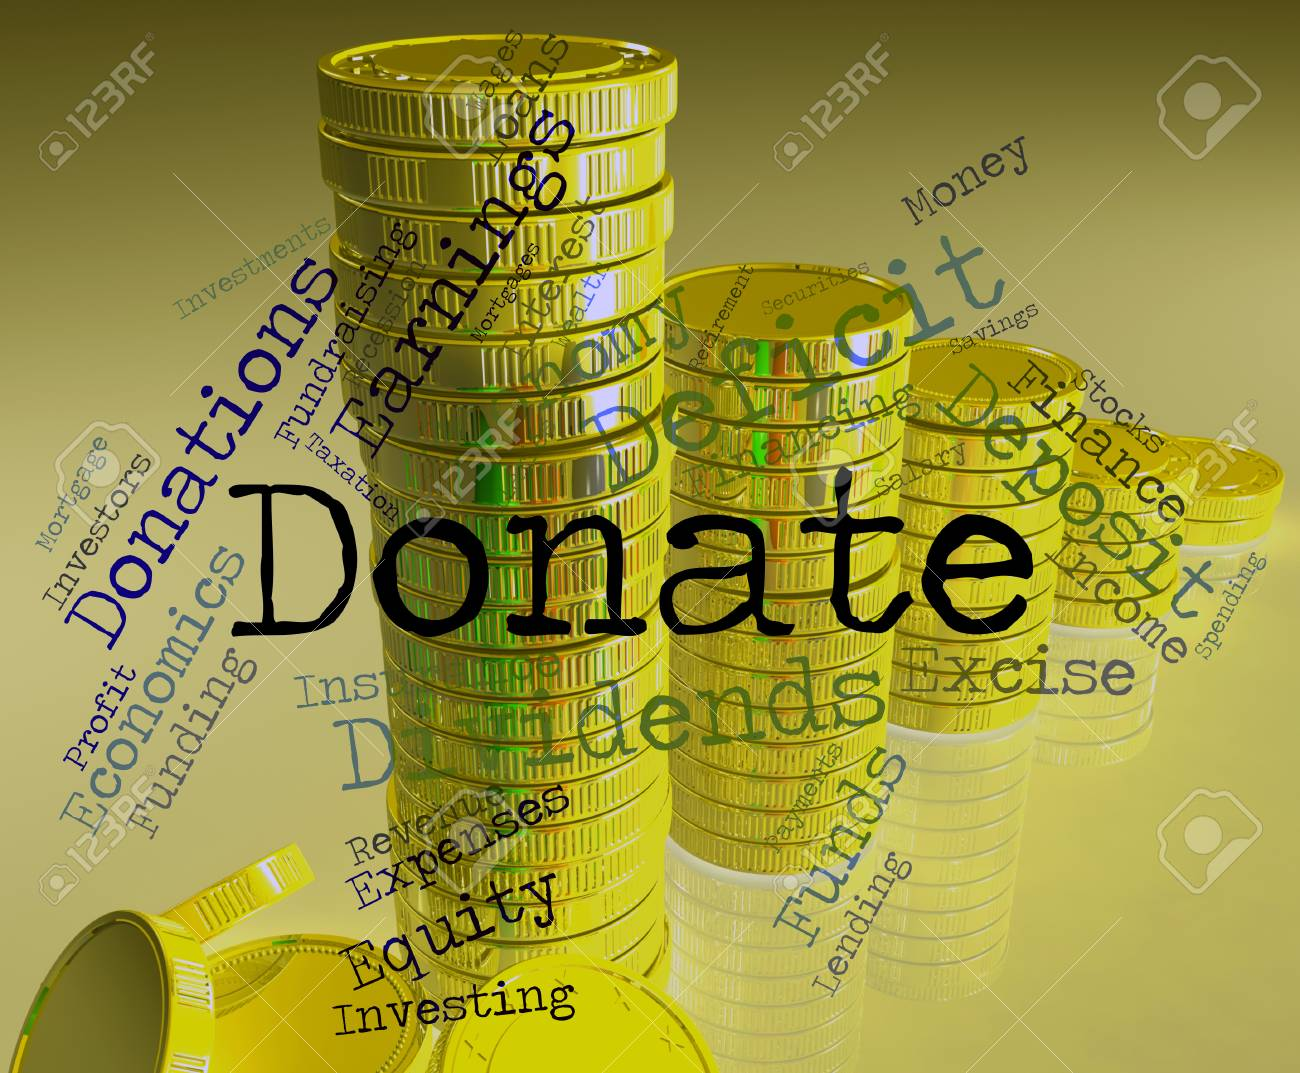 Donate Word Meaning Donation Donating And Volunteers Stock Photo Picture And Royalty Free Image Image 49659137